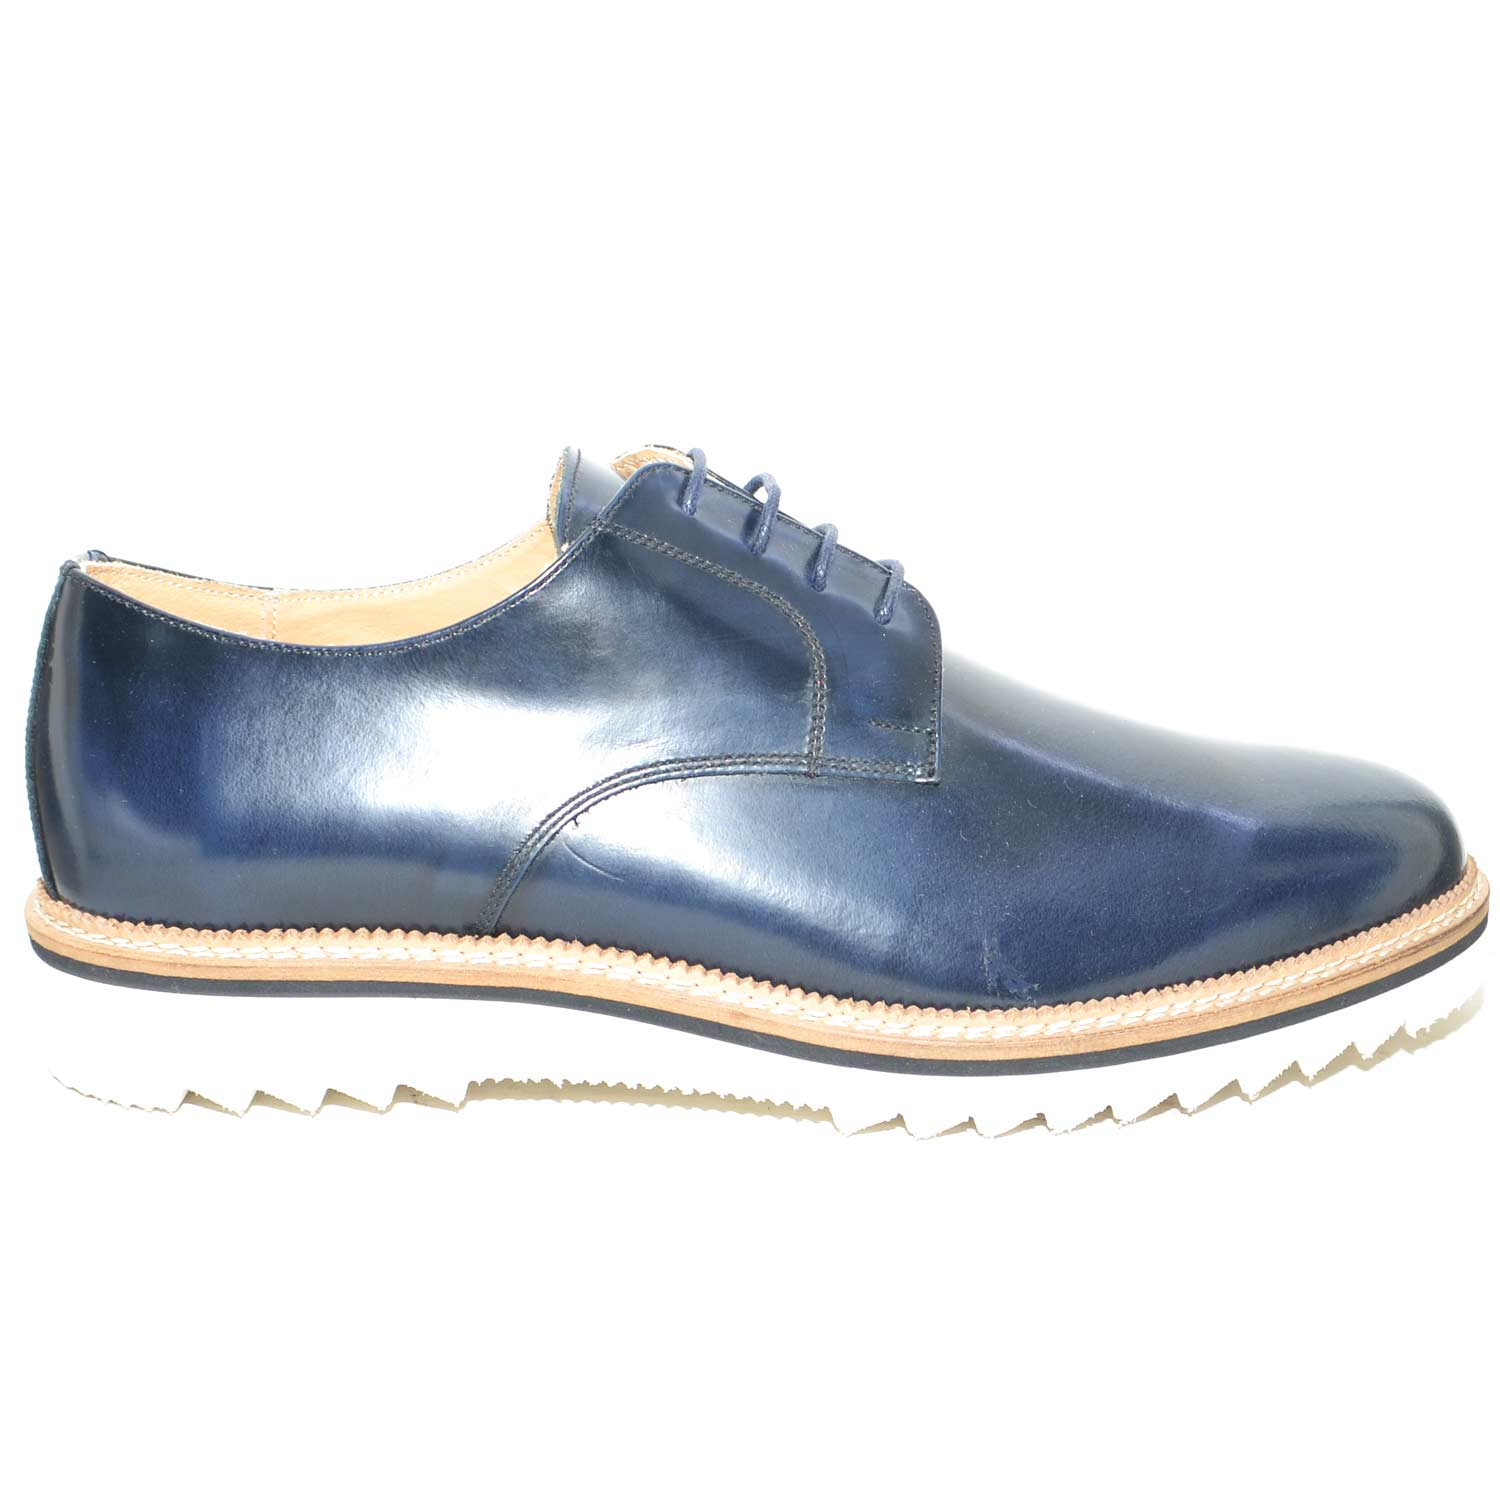 Scarpe stringate blu abrasivato art 4567 ultraleggero fondo light .